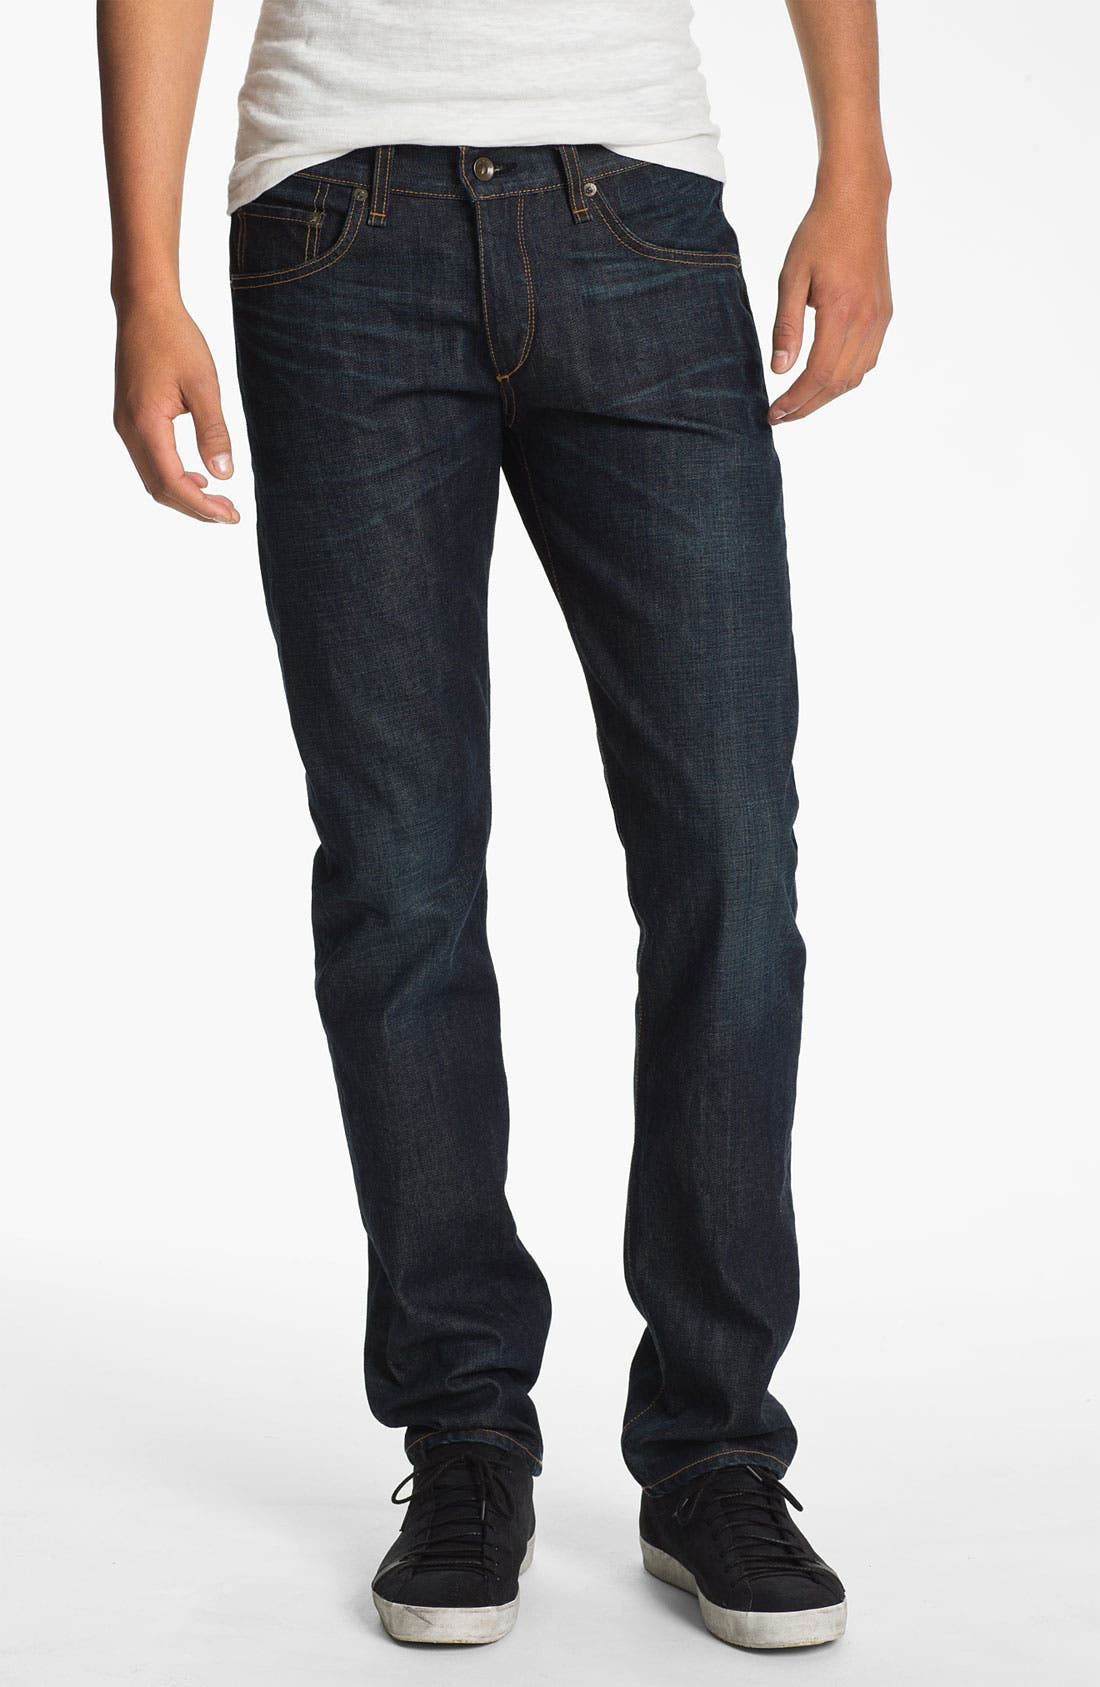 Alternate Image 1 Selected - rag & bone 'RB19X' Slim Straight Leg Jeans (Dover Blue)